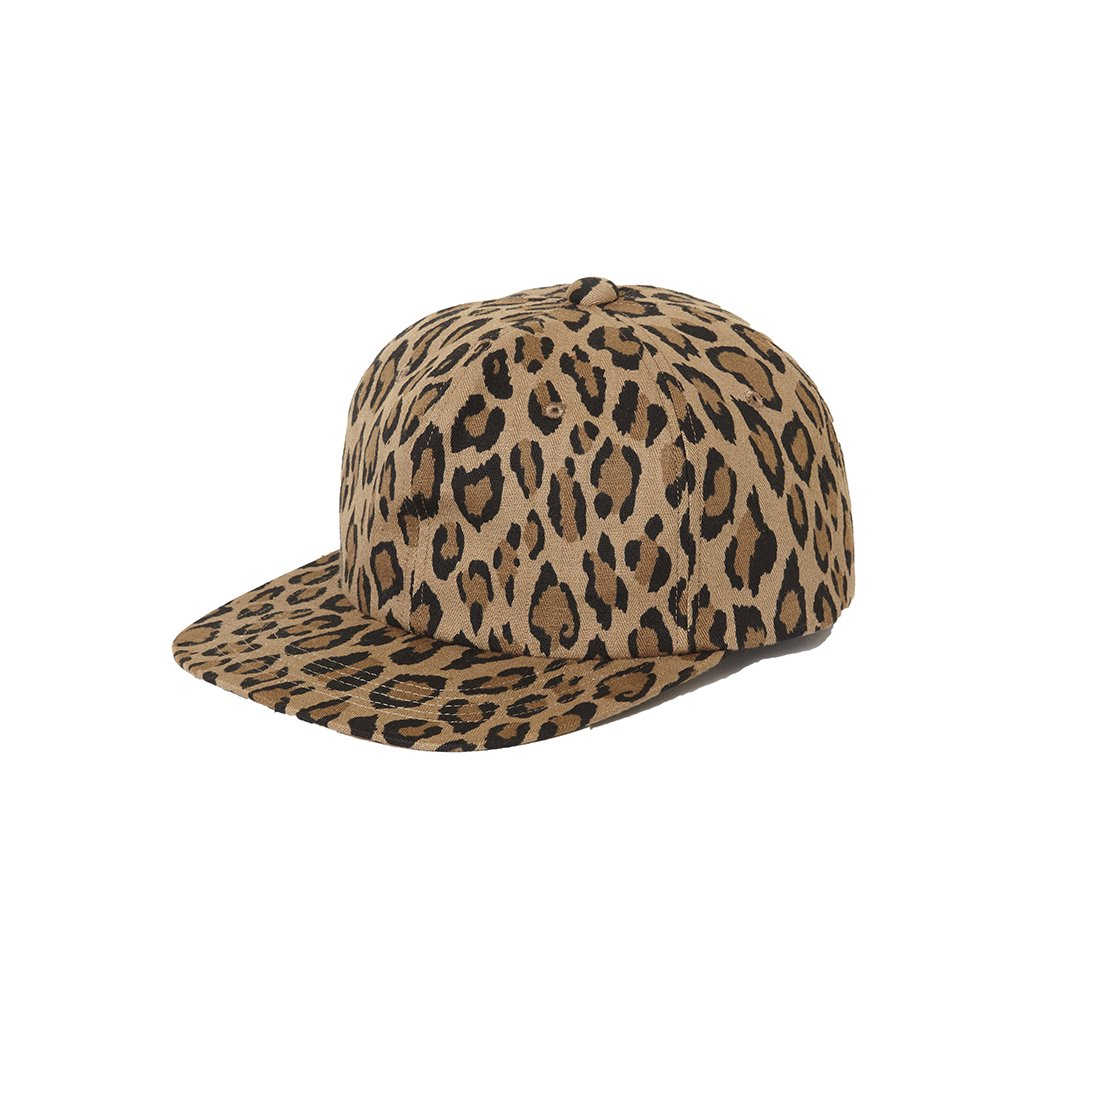 CAPTAINS HELM #LEOPARD CAP